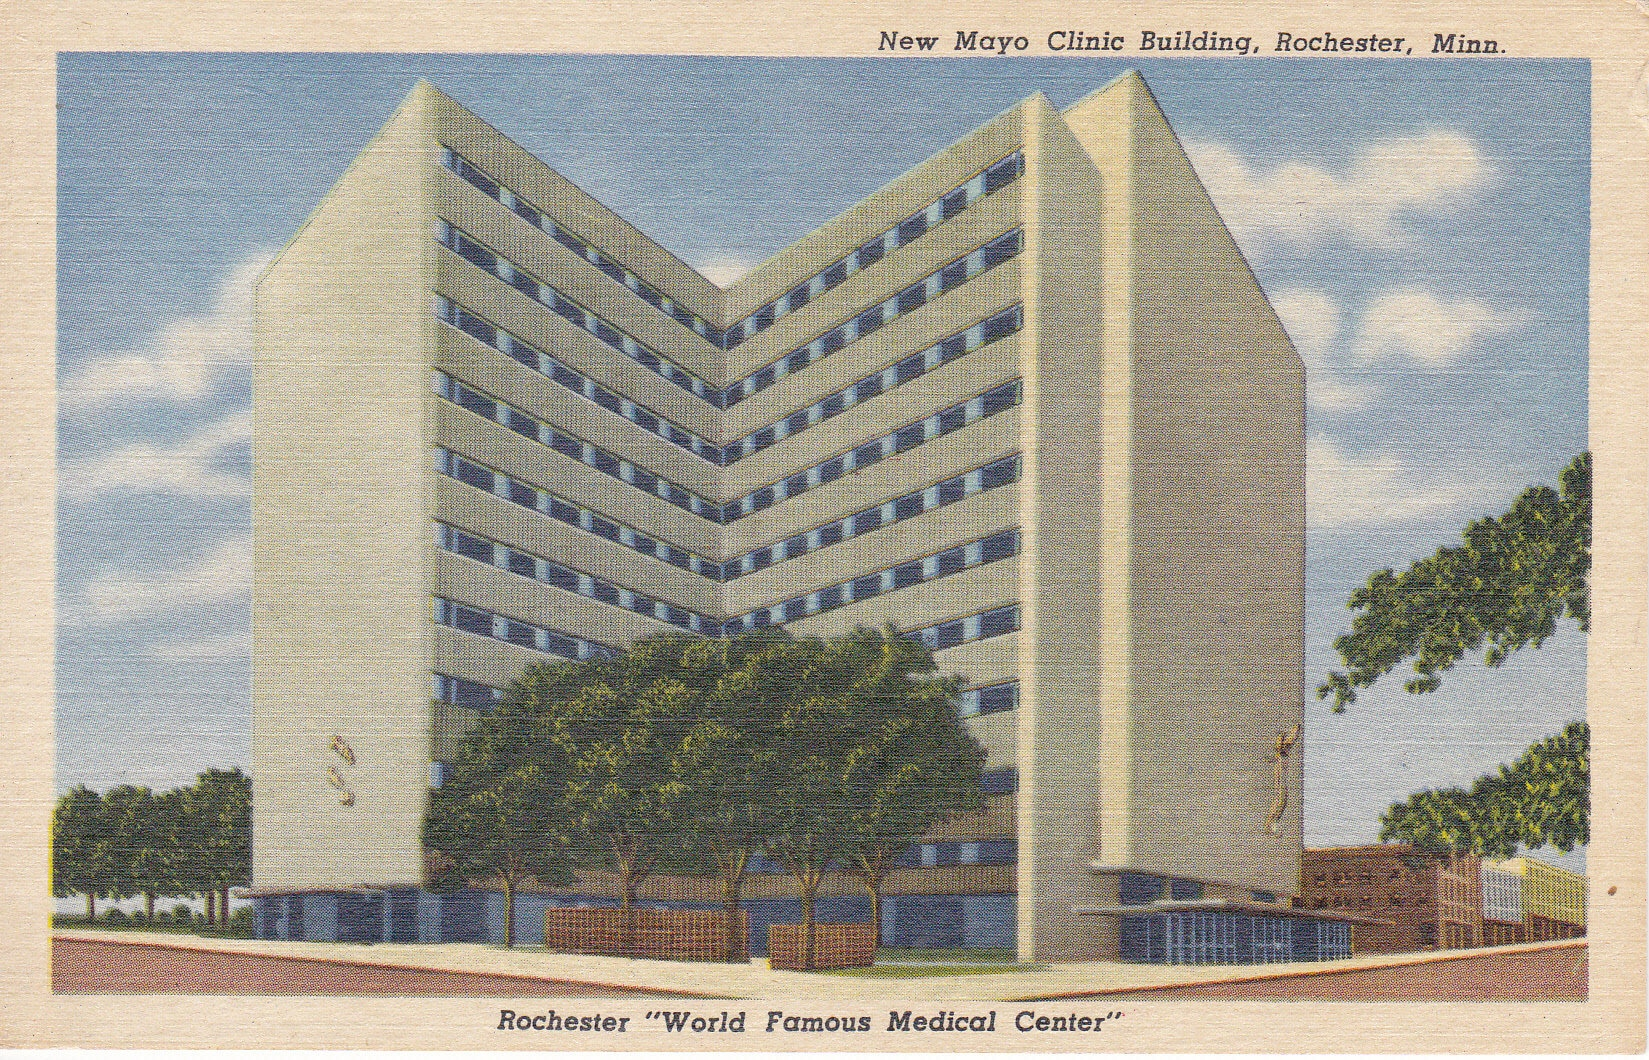 New Mayo Clinic Building 1950's Postcard Rochester Minnesota World Famous  Medical Center Unussed